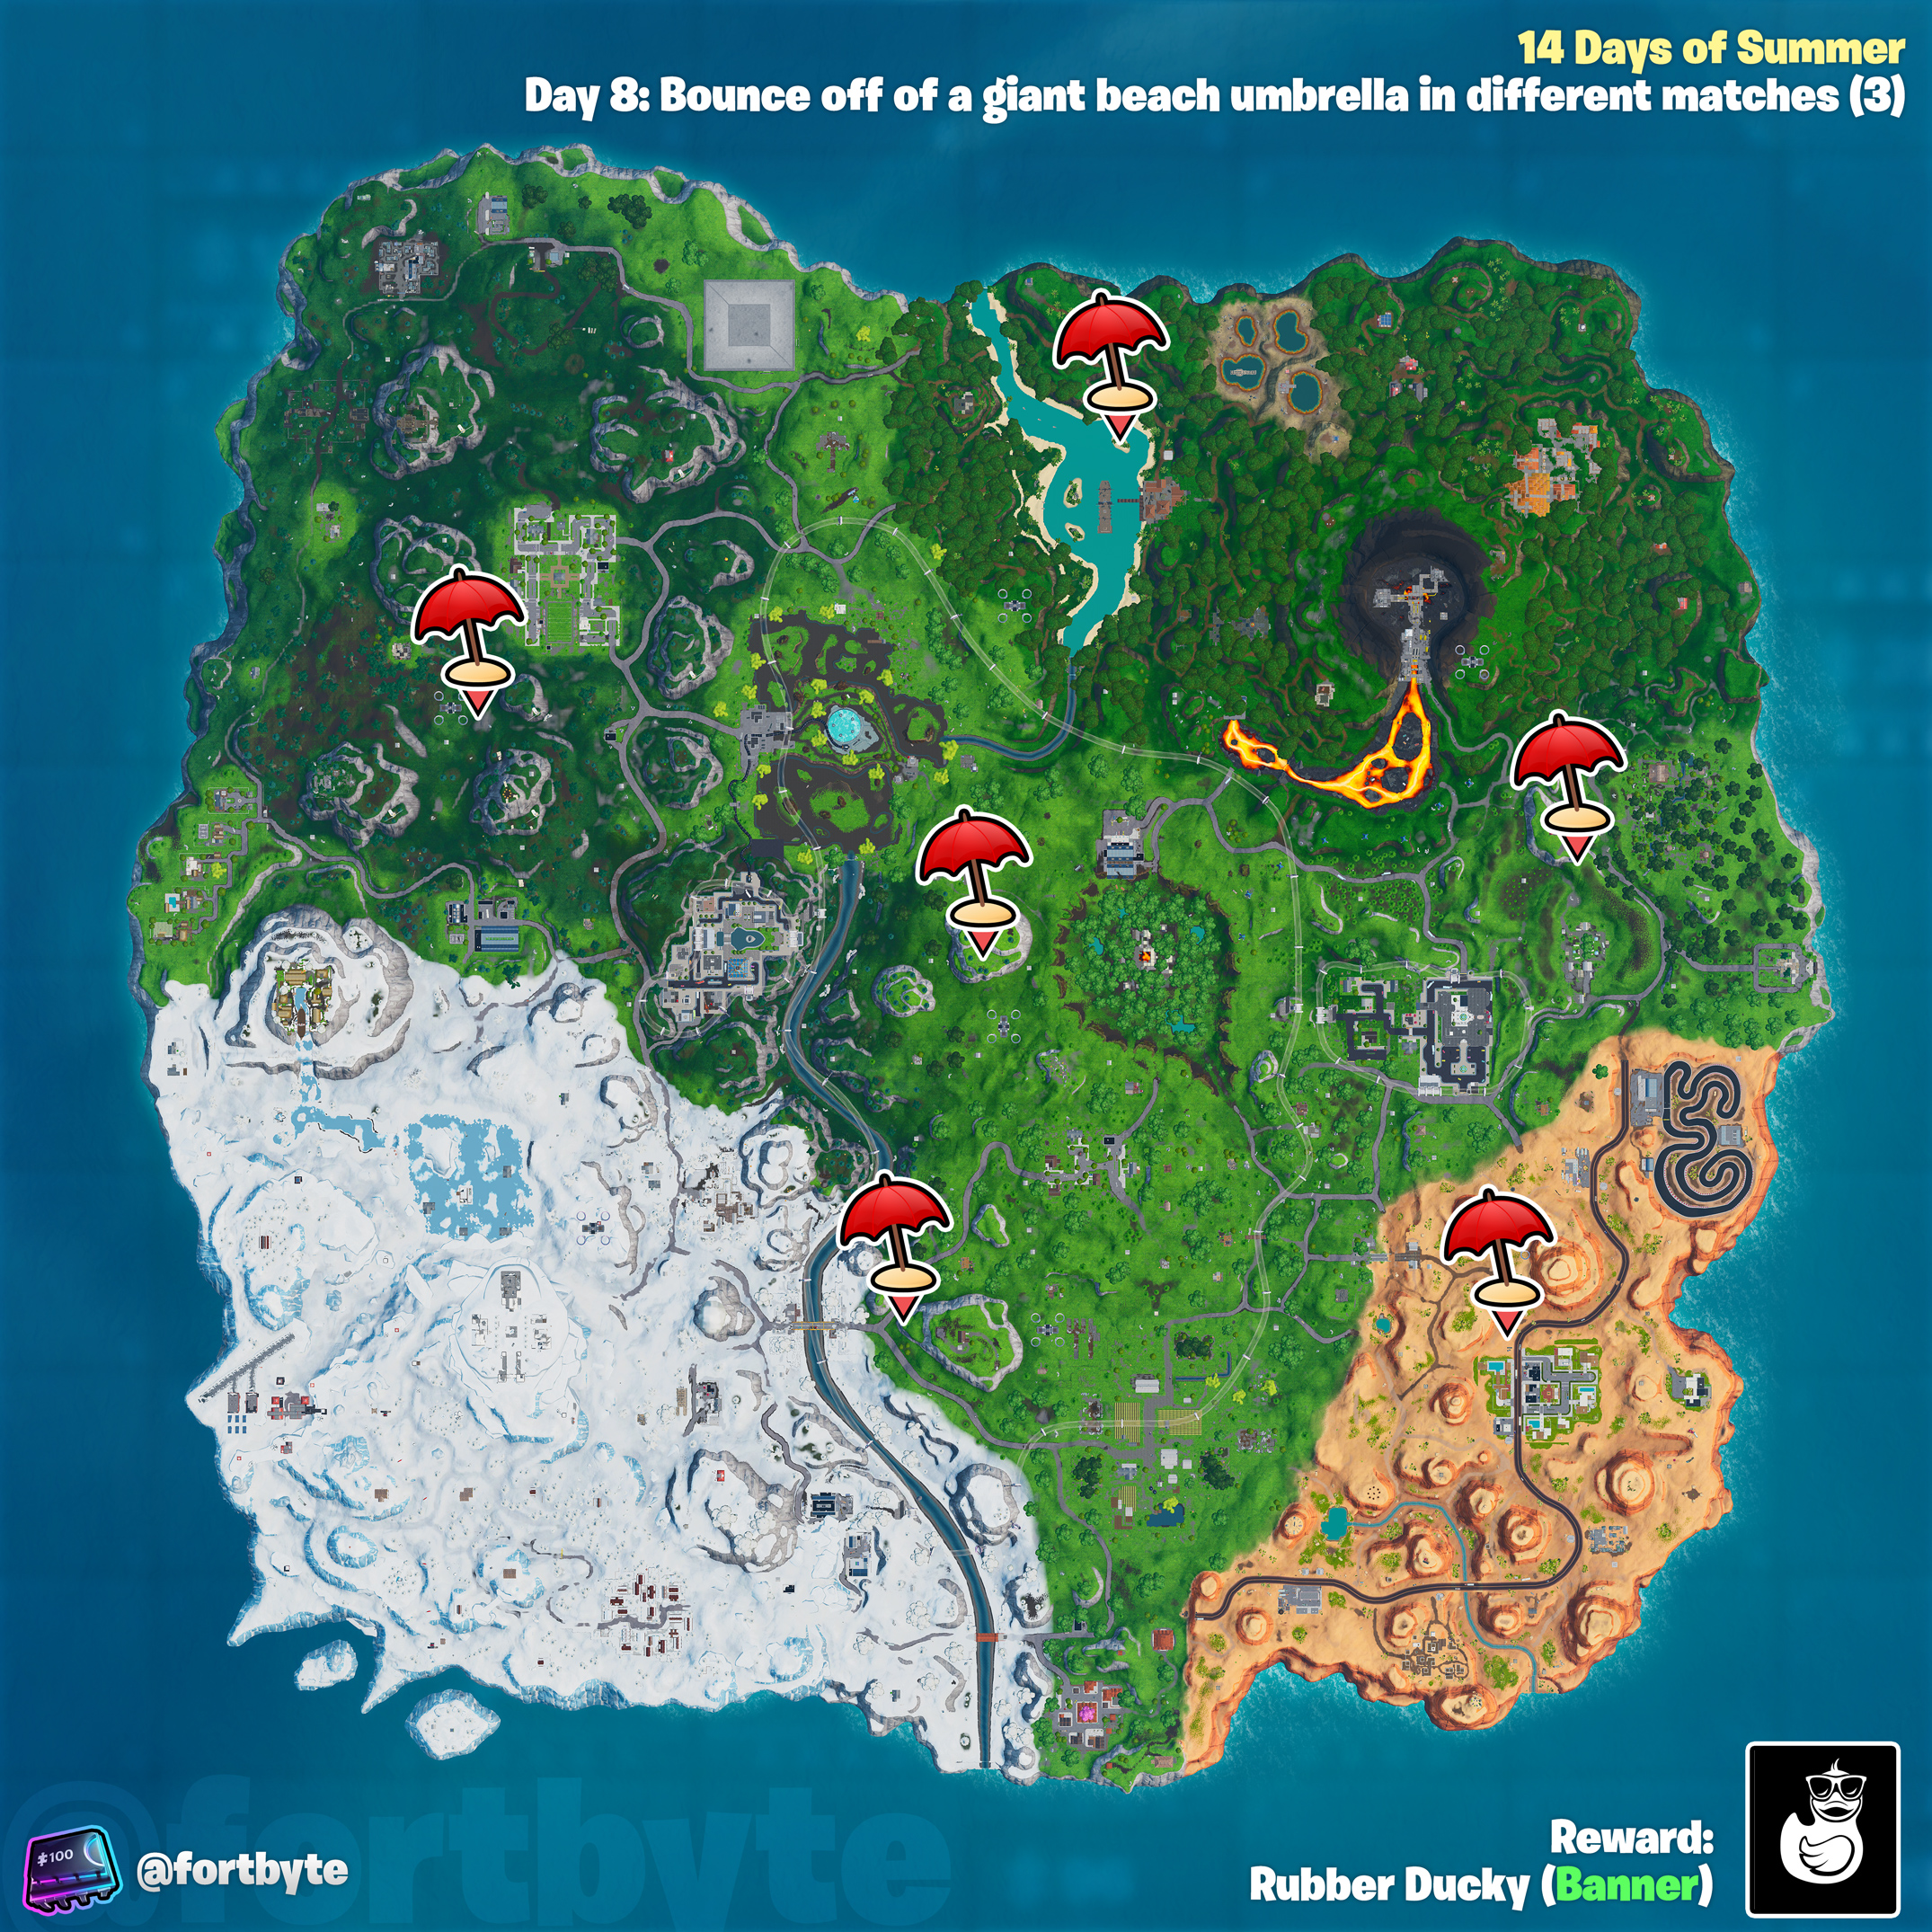 , Fortnite 14 Days of Summer – Bounce off of a giant beach umbrella in different matches location guide, AllYourGames.com, AllYourGames.com